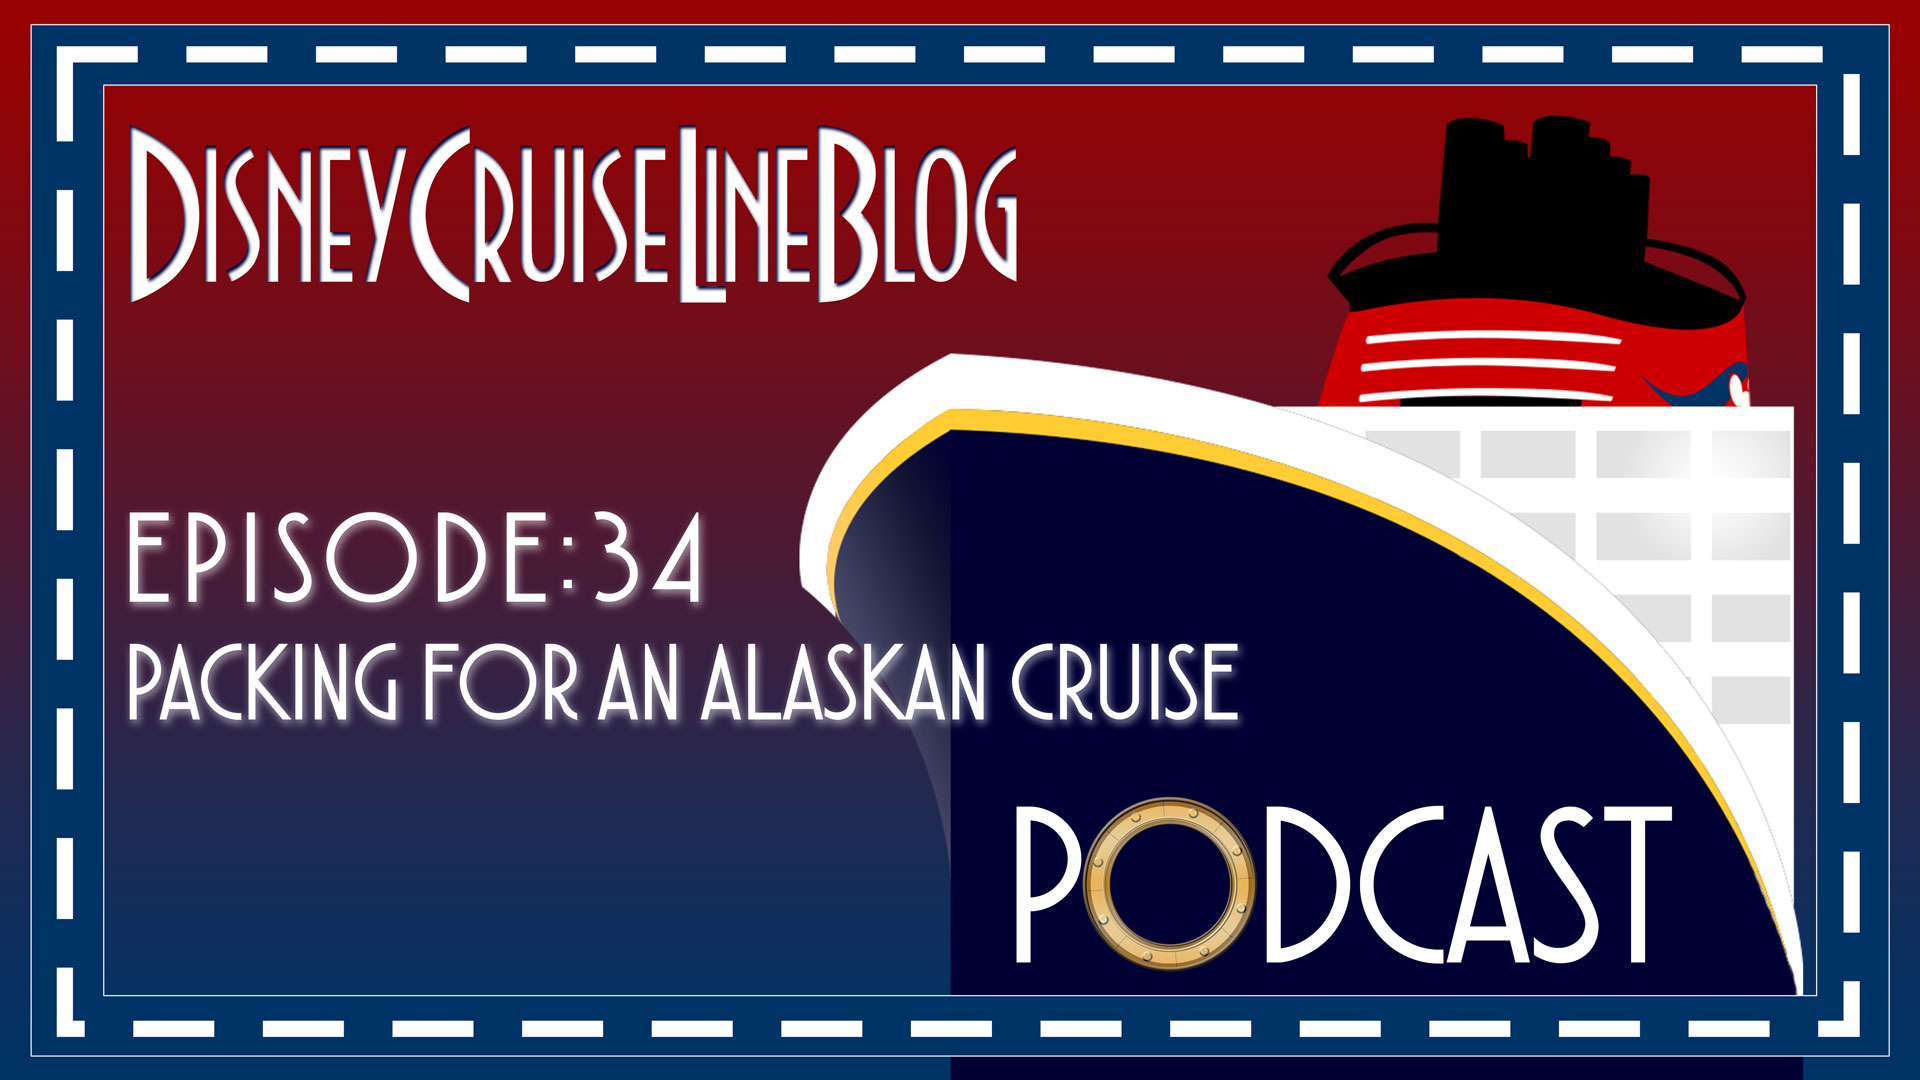 DCL Blog Podcast Episode 34 Alaskan Packing